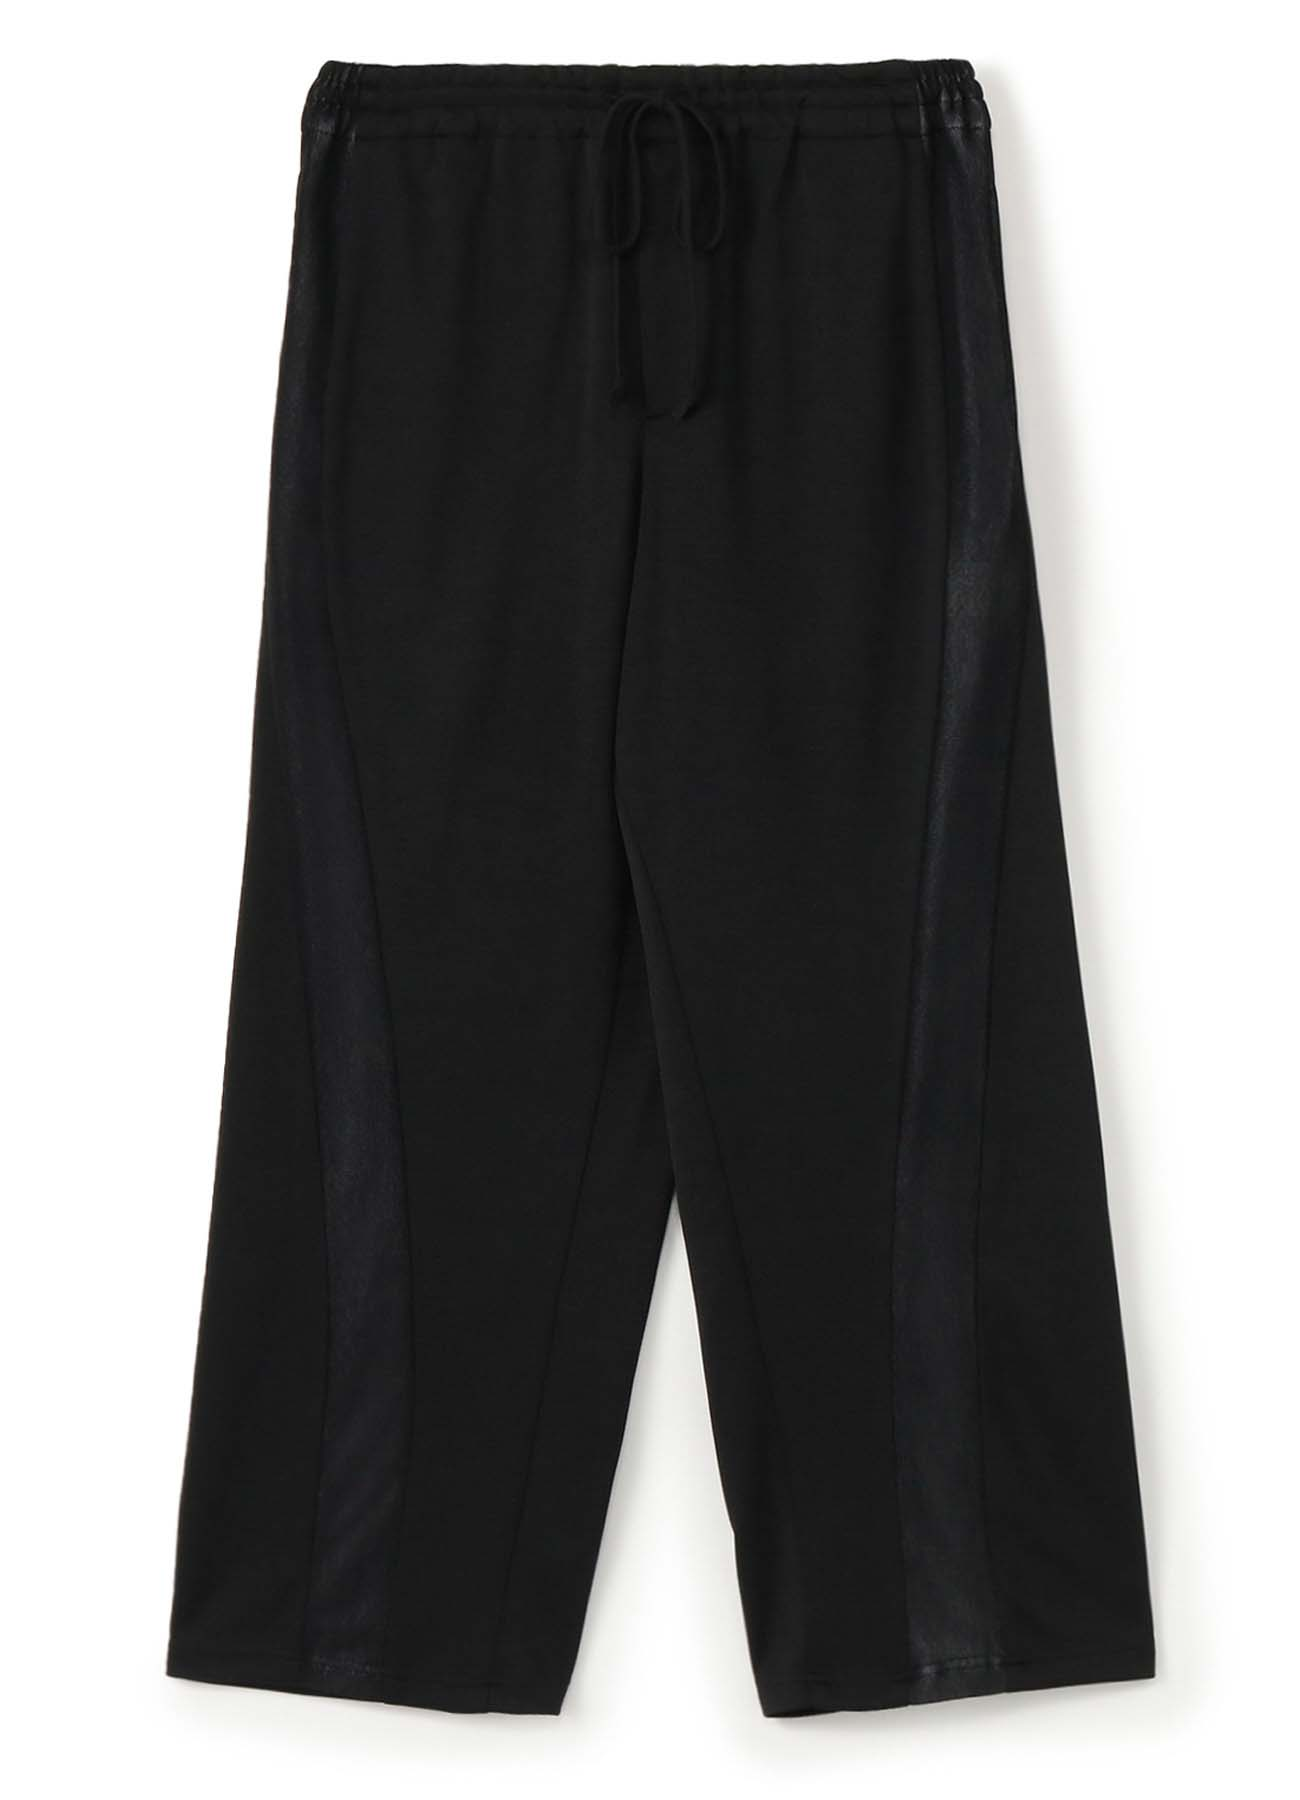 Pe/Smooth Jersey Layered Tulle Track Pants